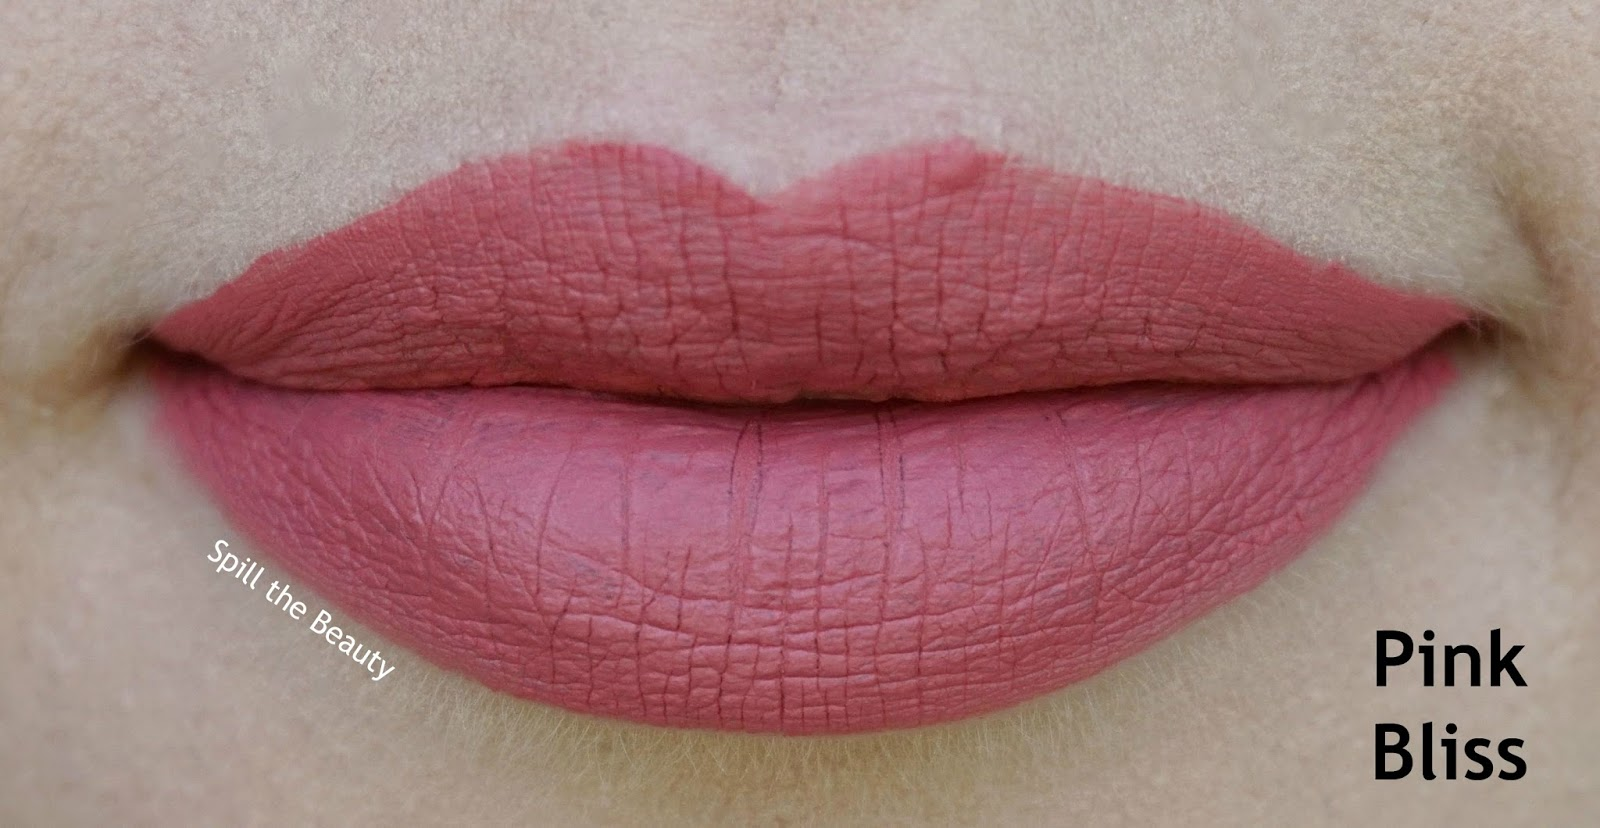 rimmel london stay matte liquid lip color review swatches 100 pink bliss